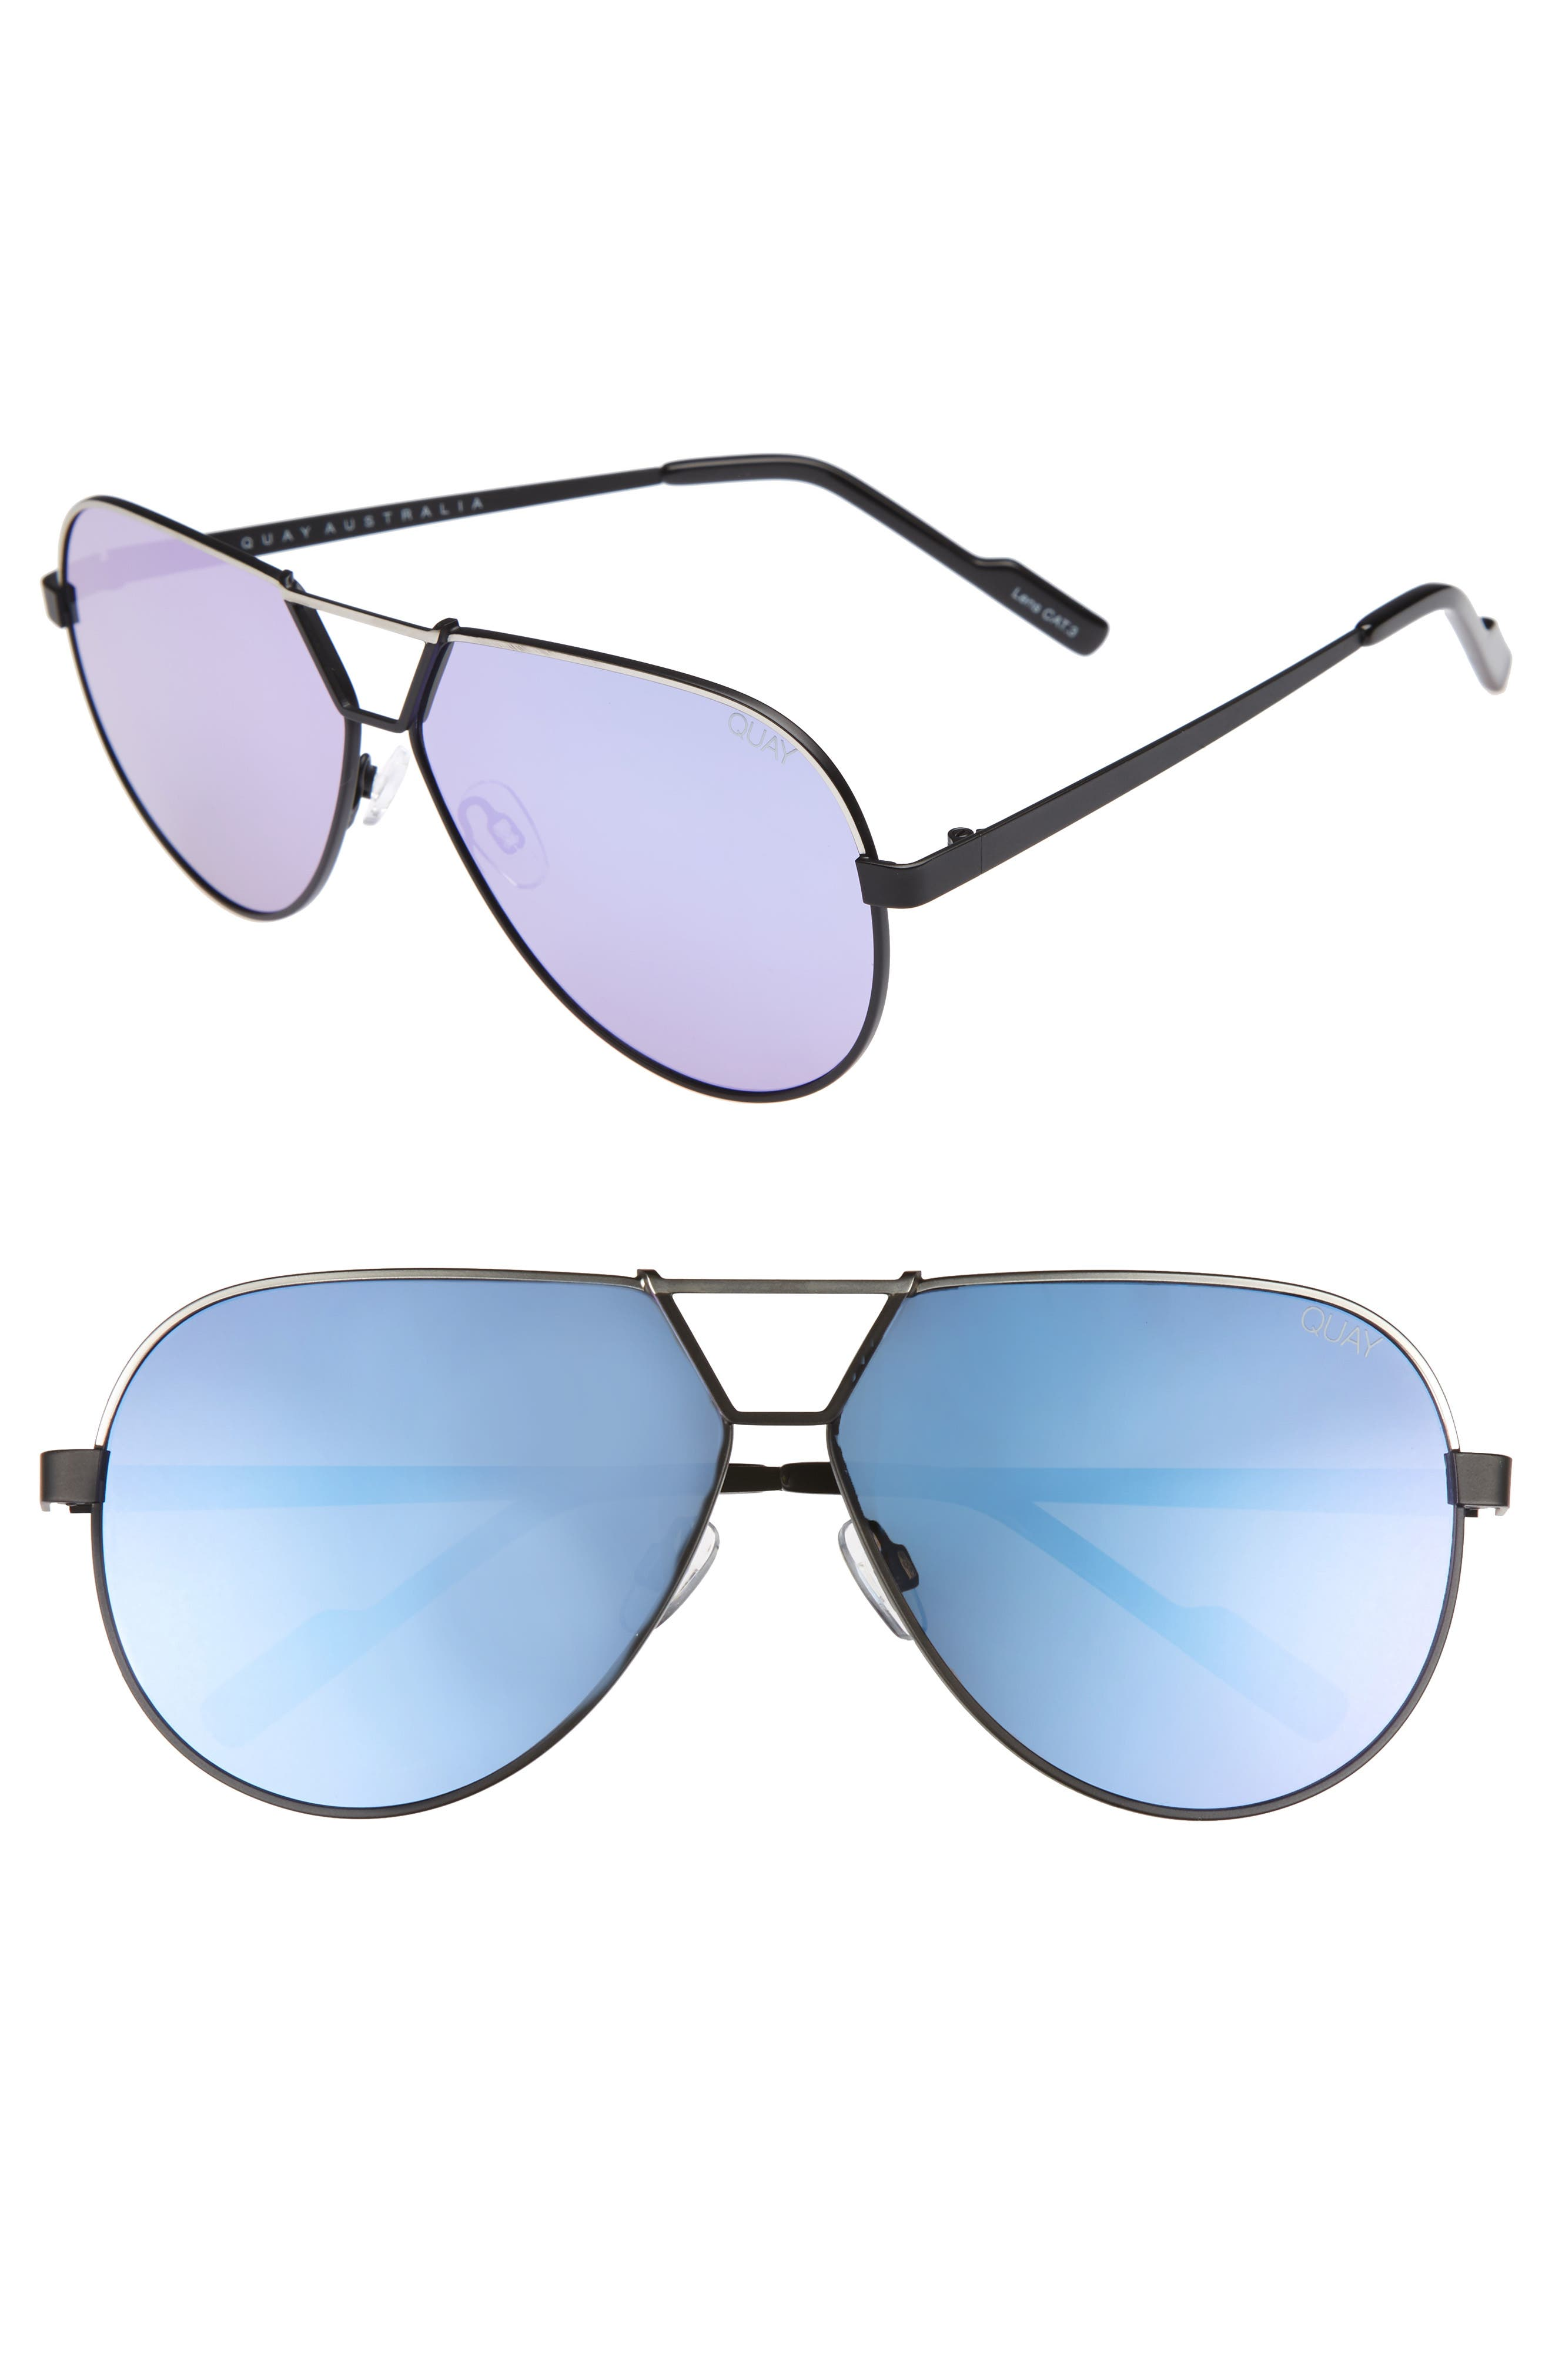 Supernova 63mm Aviator Sunglasses,                         Main,                         color, 001